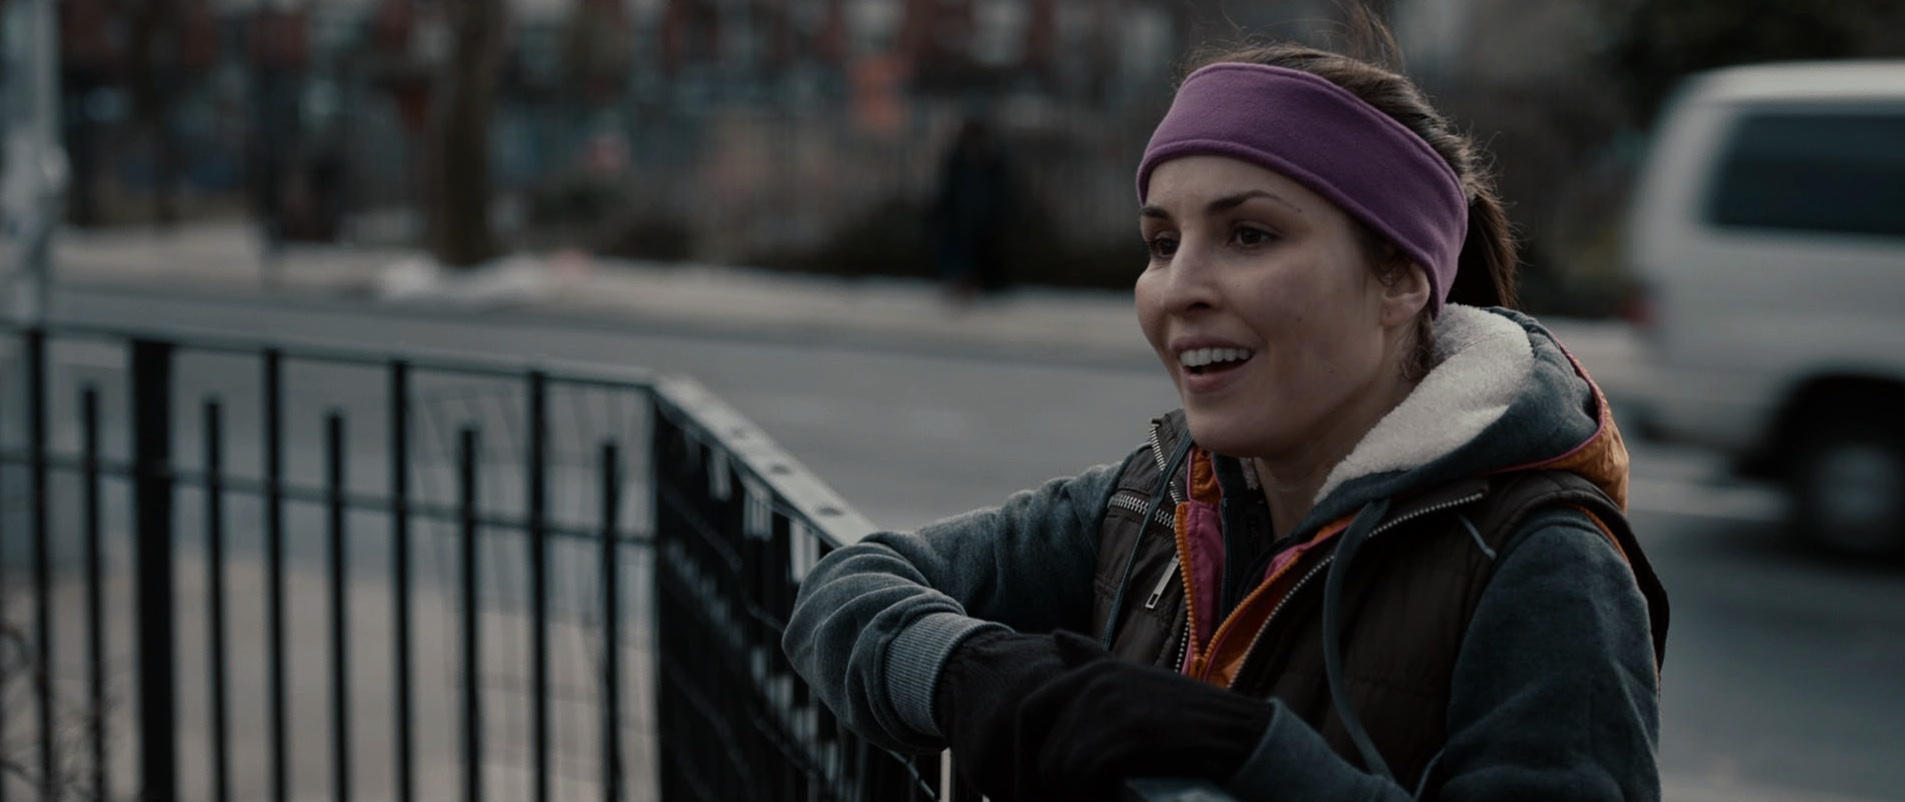 Noomi Rapace in The Drop (2014)